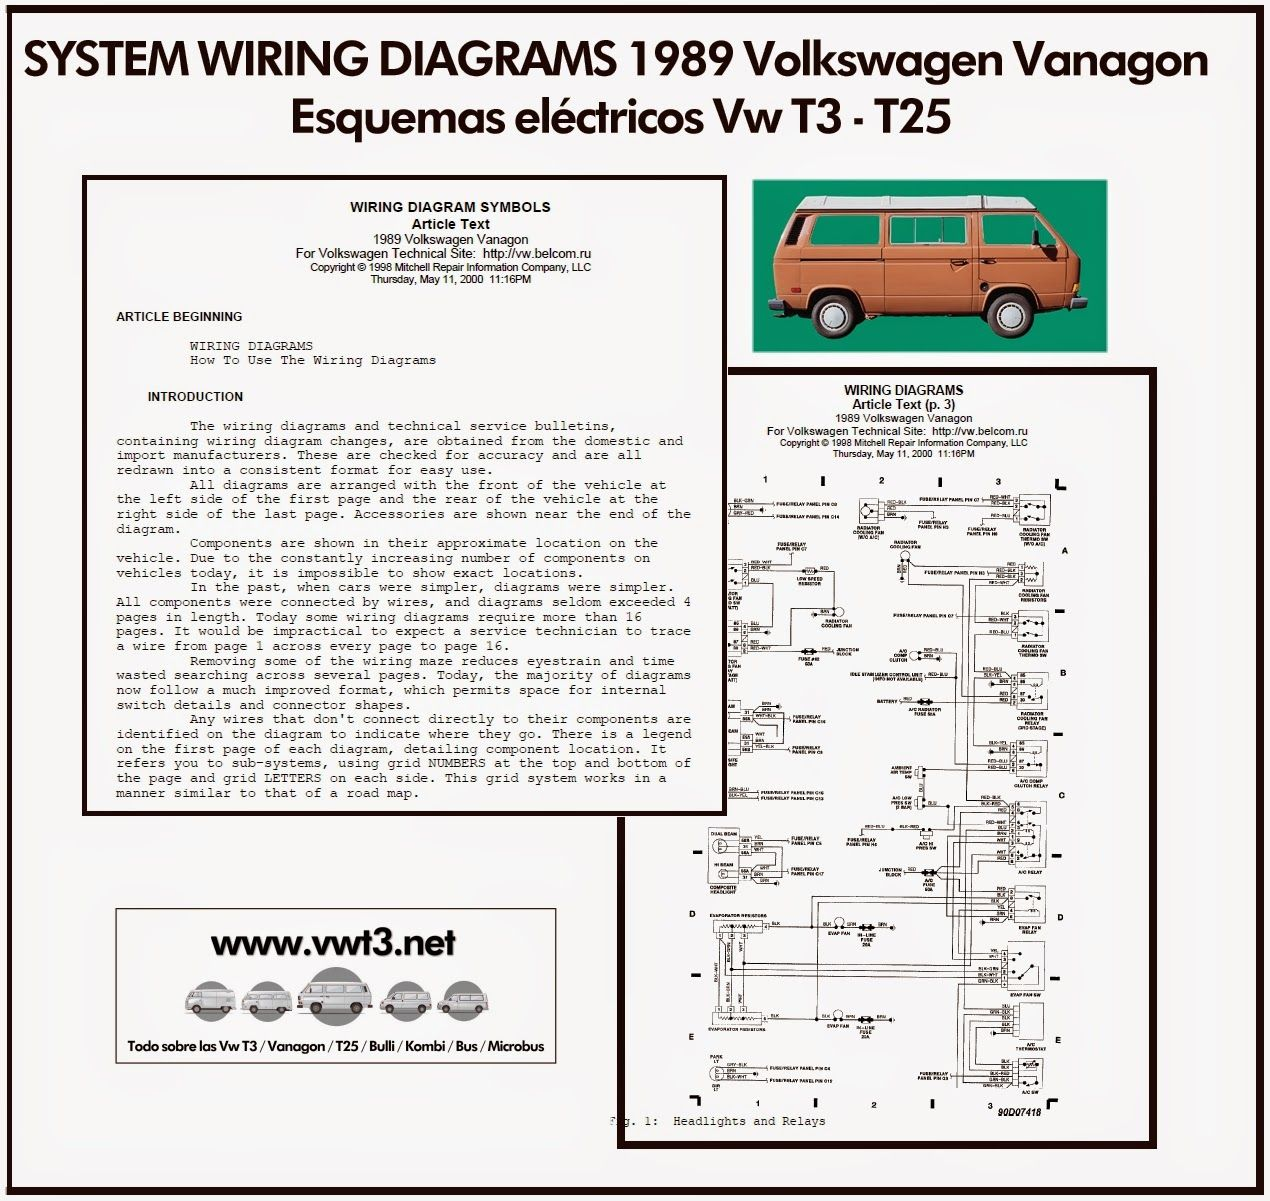 www vwt3 net vw t3 t25 system wiring diagrams 1989 esquemas rh pinterest co uk Automotive Wiring Diagrams Residential Electrical Wiring Diagrams